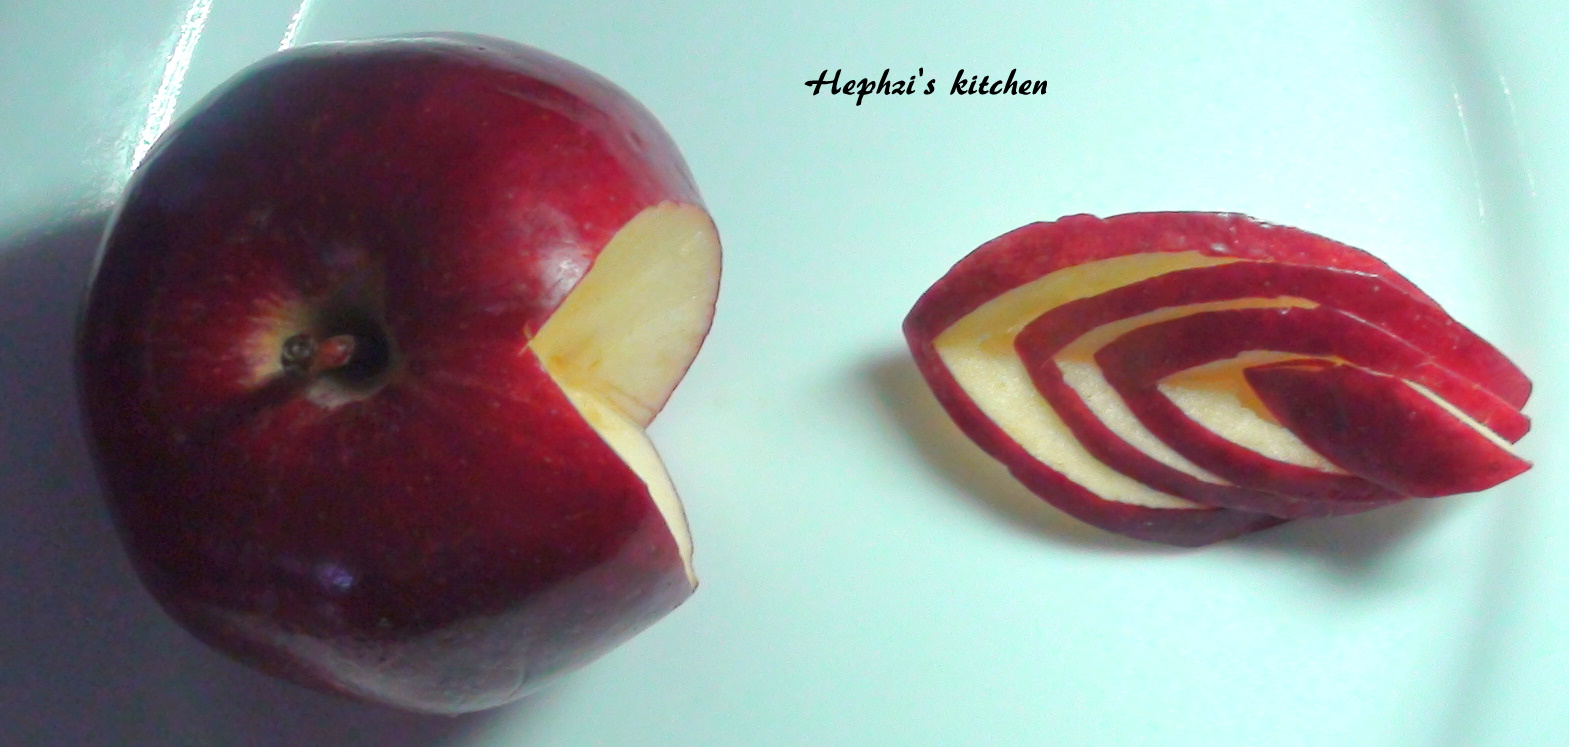 From my kitchen....: Apple carving !